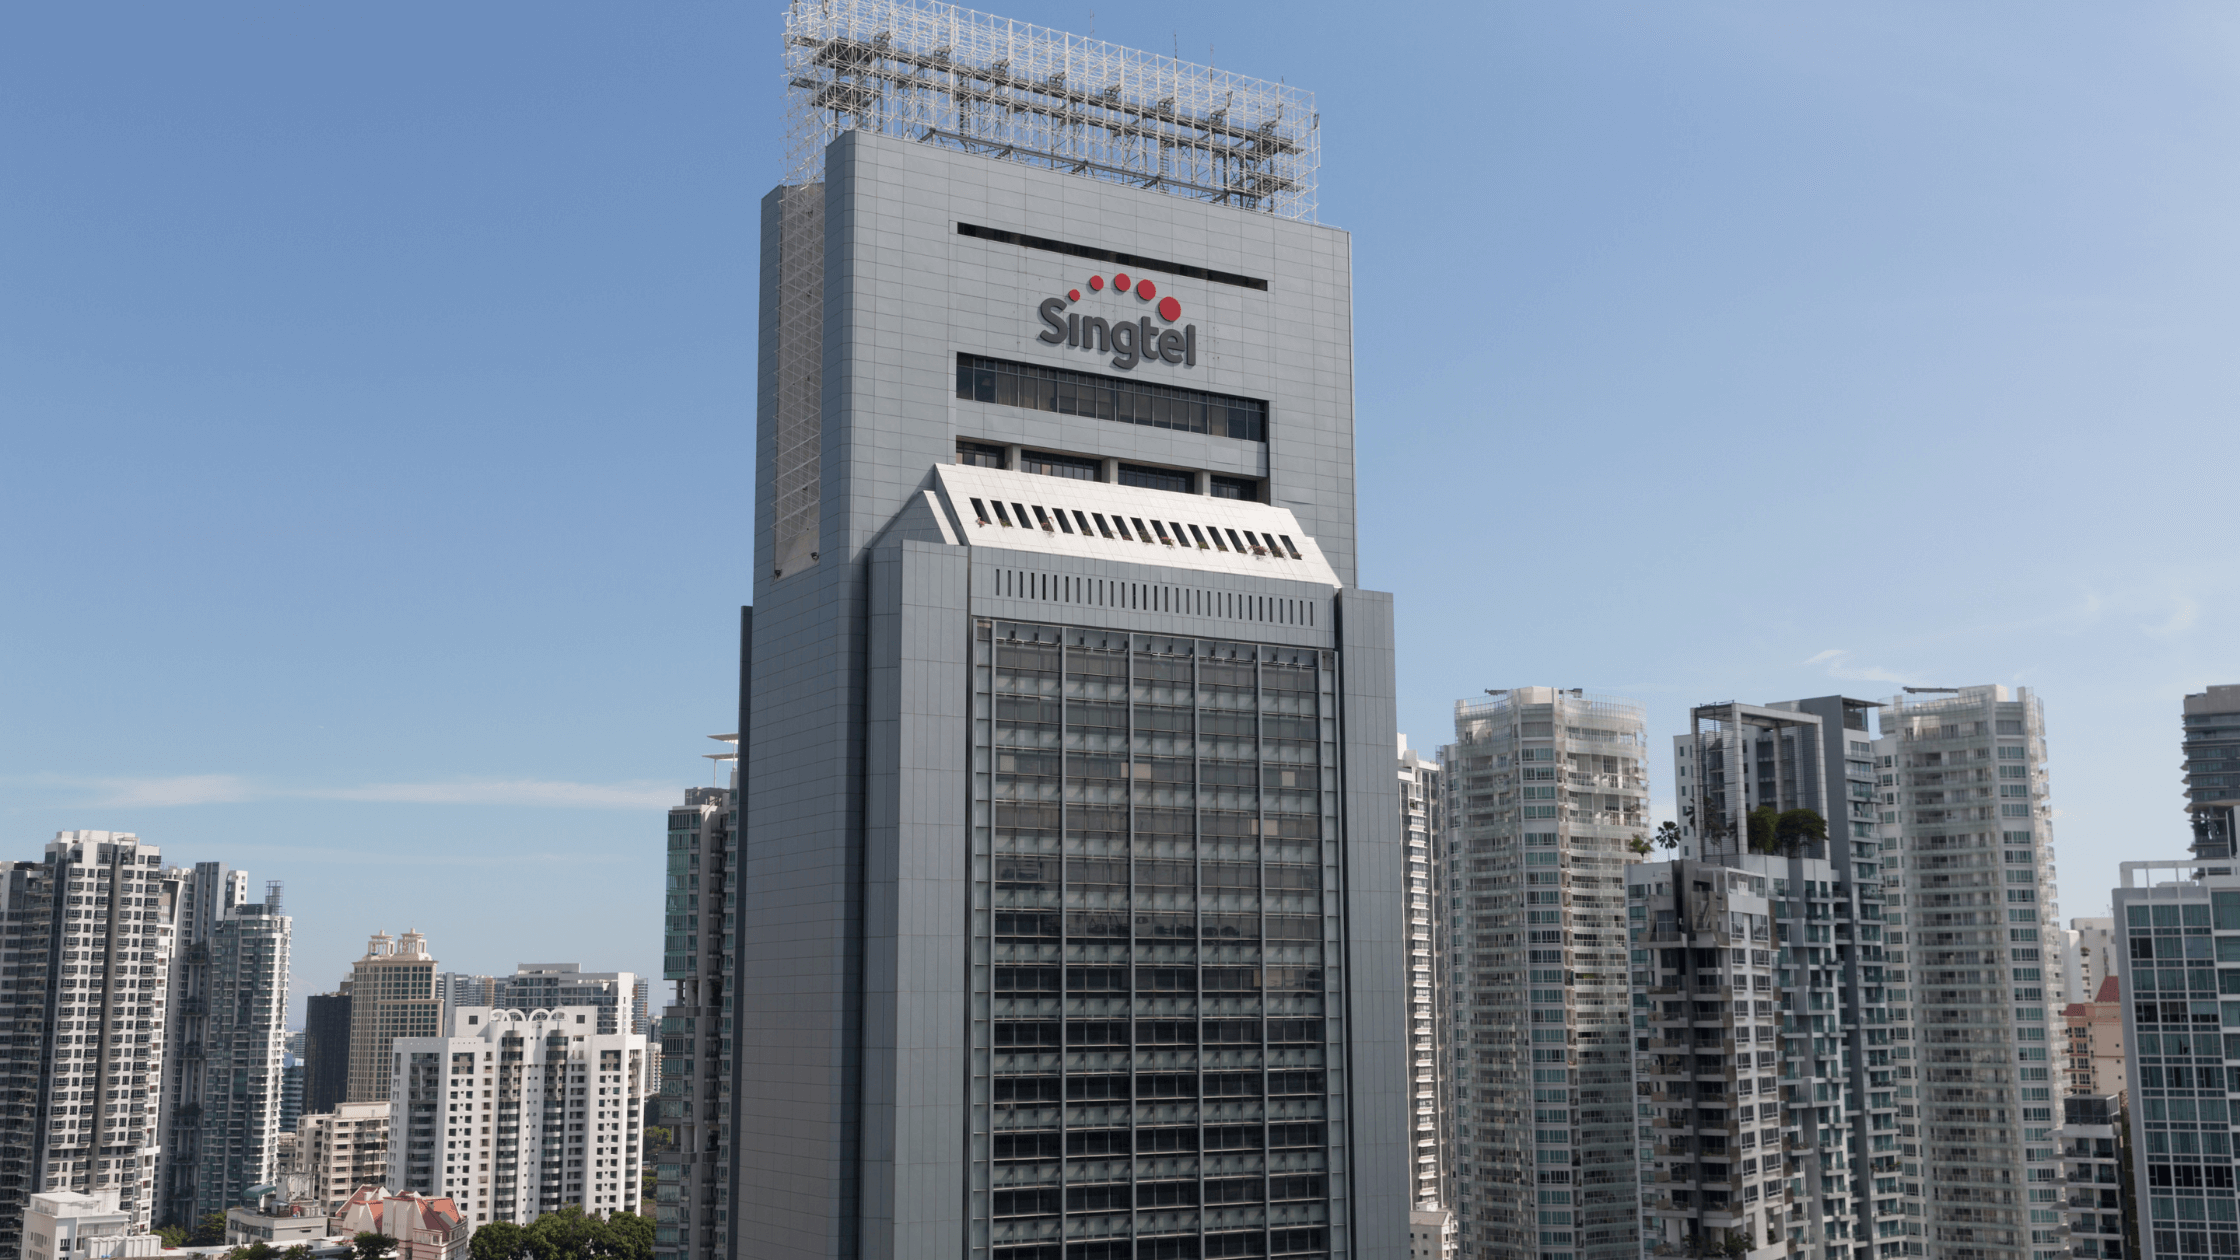 Is Singtel a Good Dividend Stock to Buy Now?